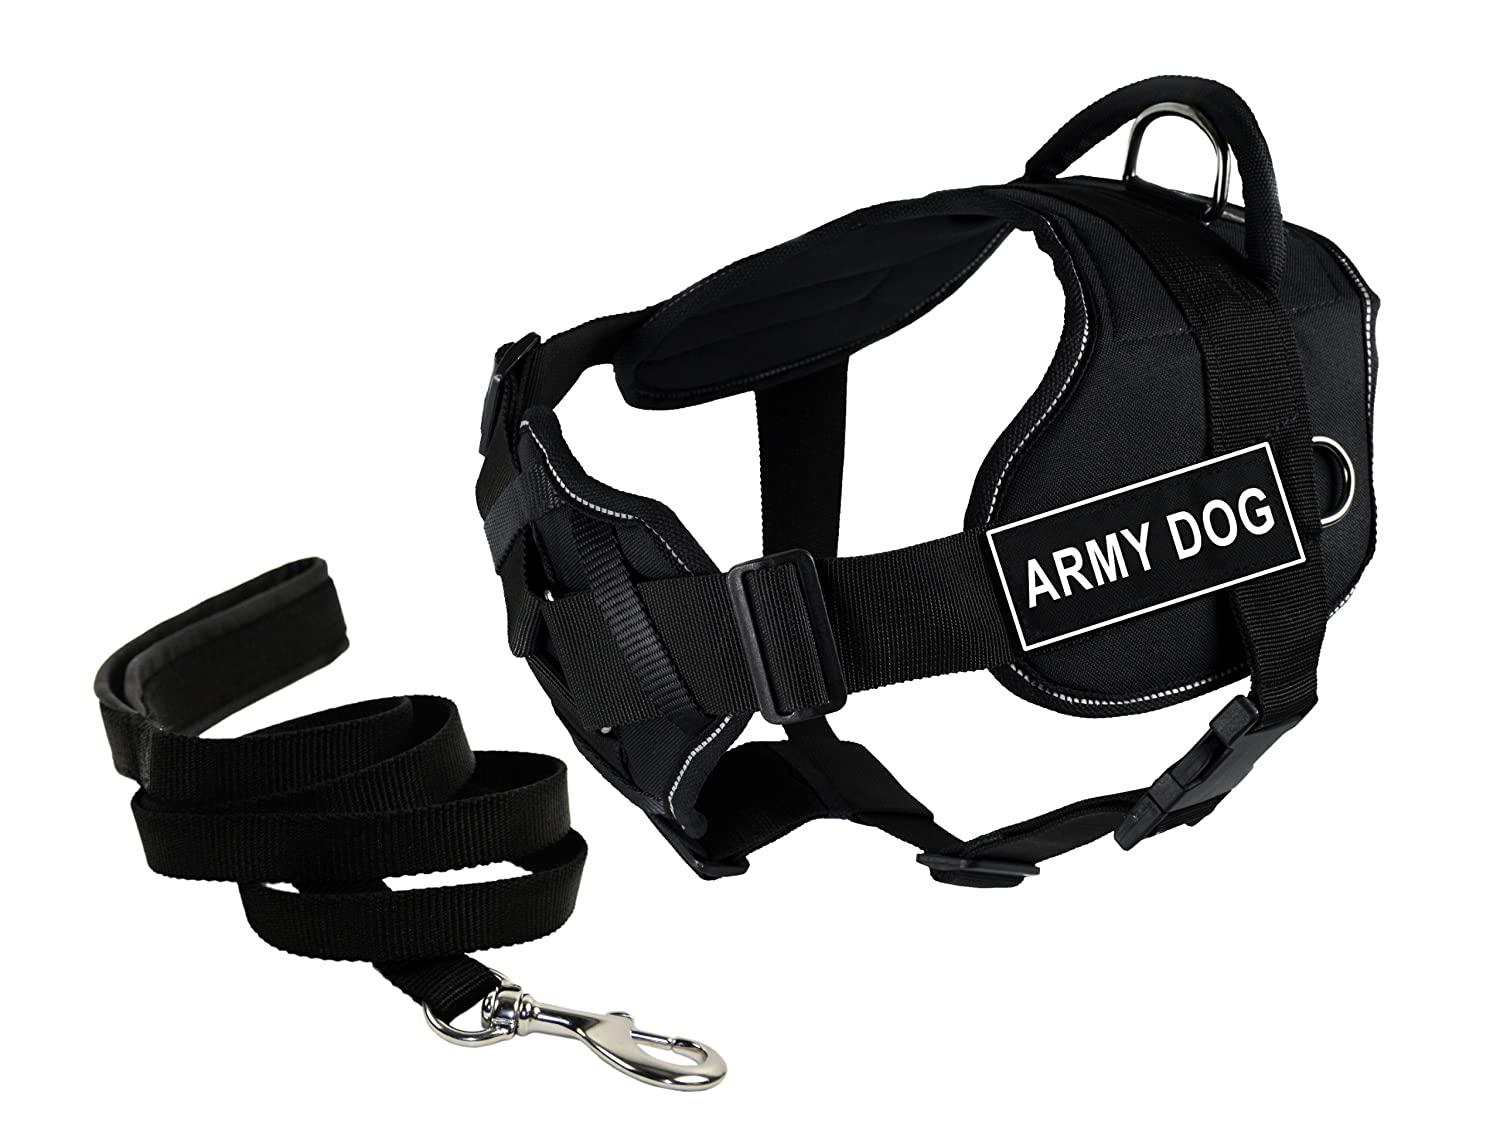 Dean & Tyler Bundle DT Fun  22 to 27-Inch Black Army Dog Reflective Harness with Chest Support, Padded Puppy Leash and 6-Feet Stainless Steel Snap